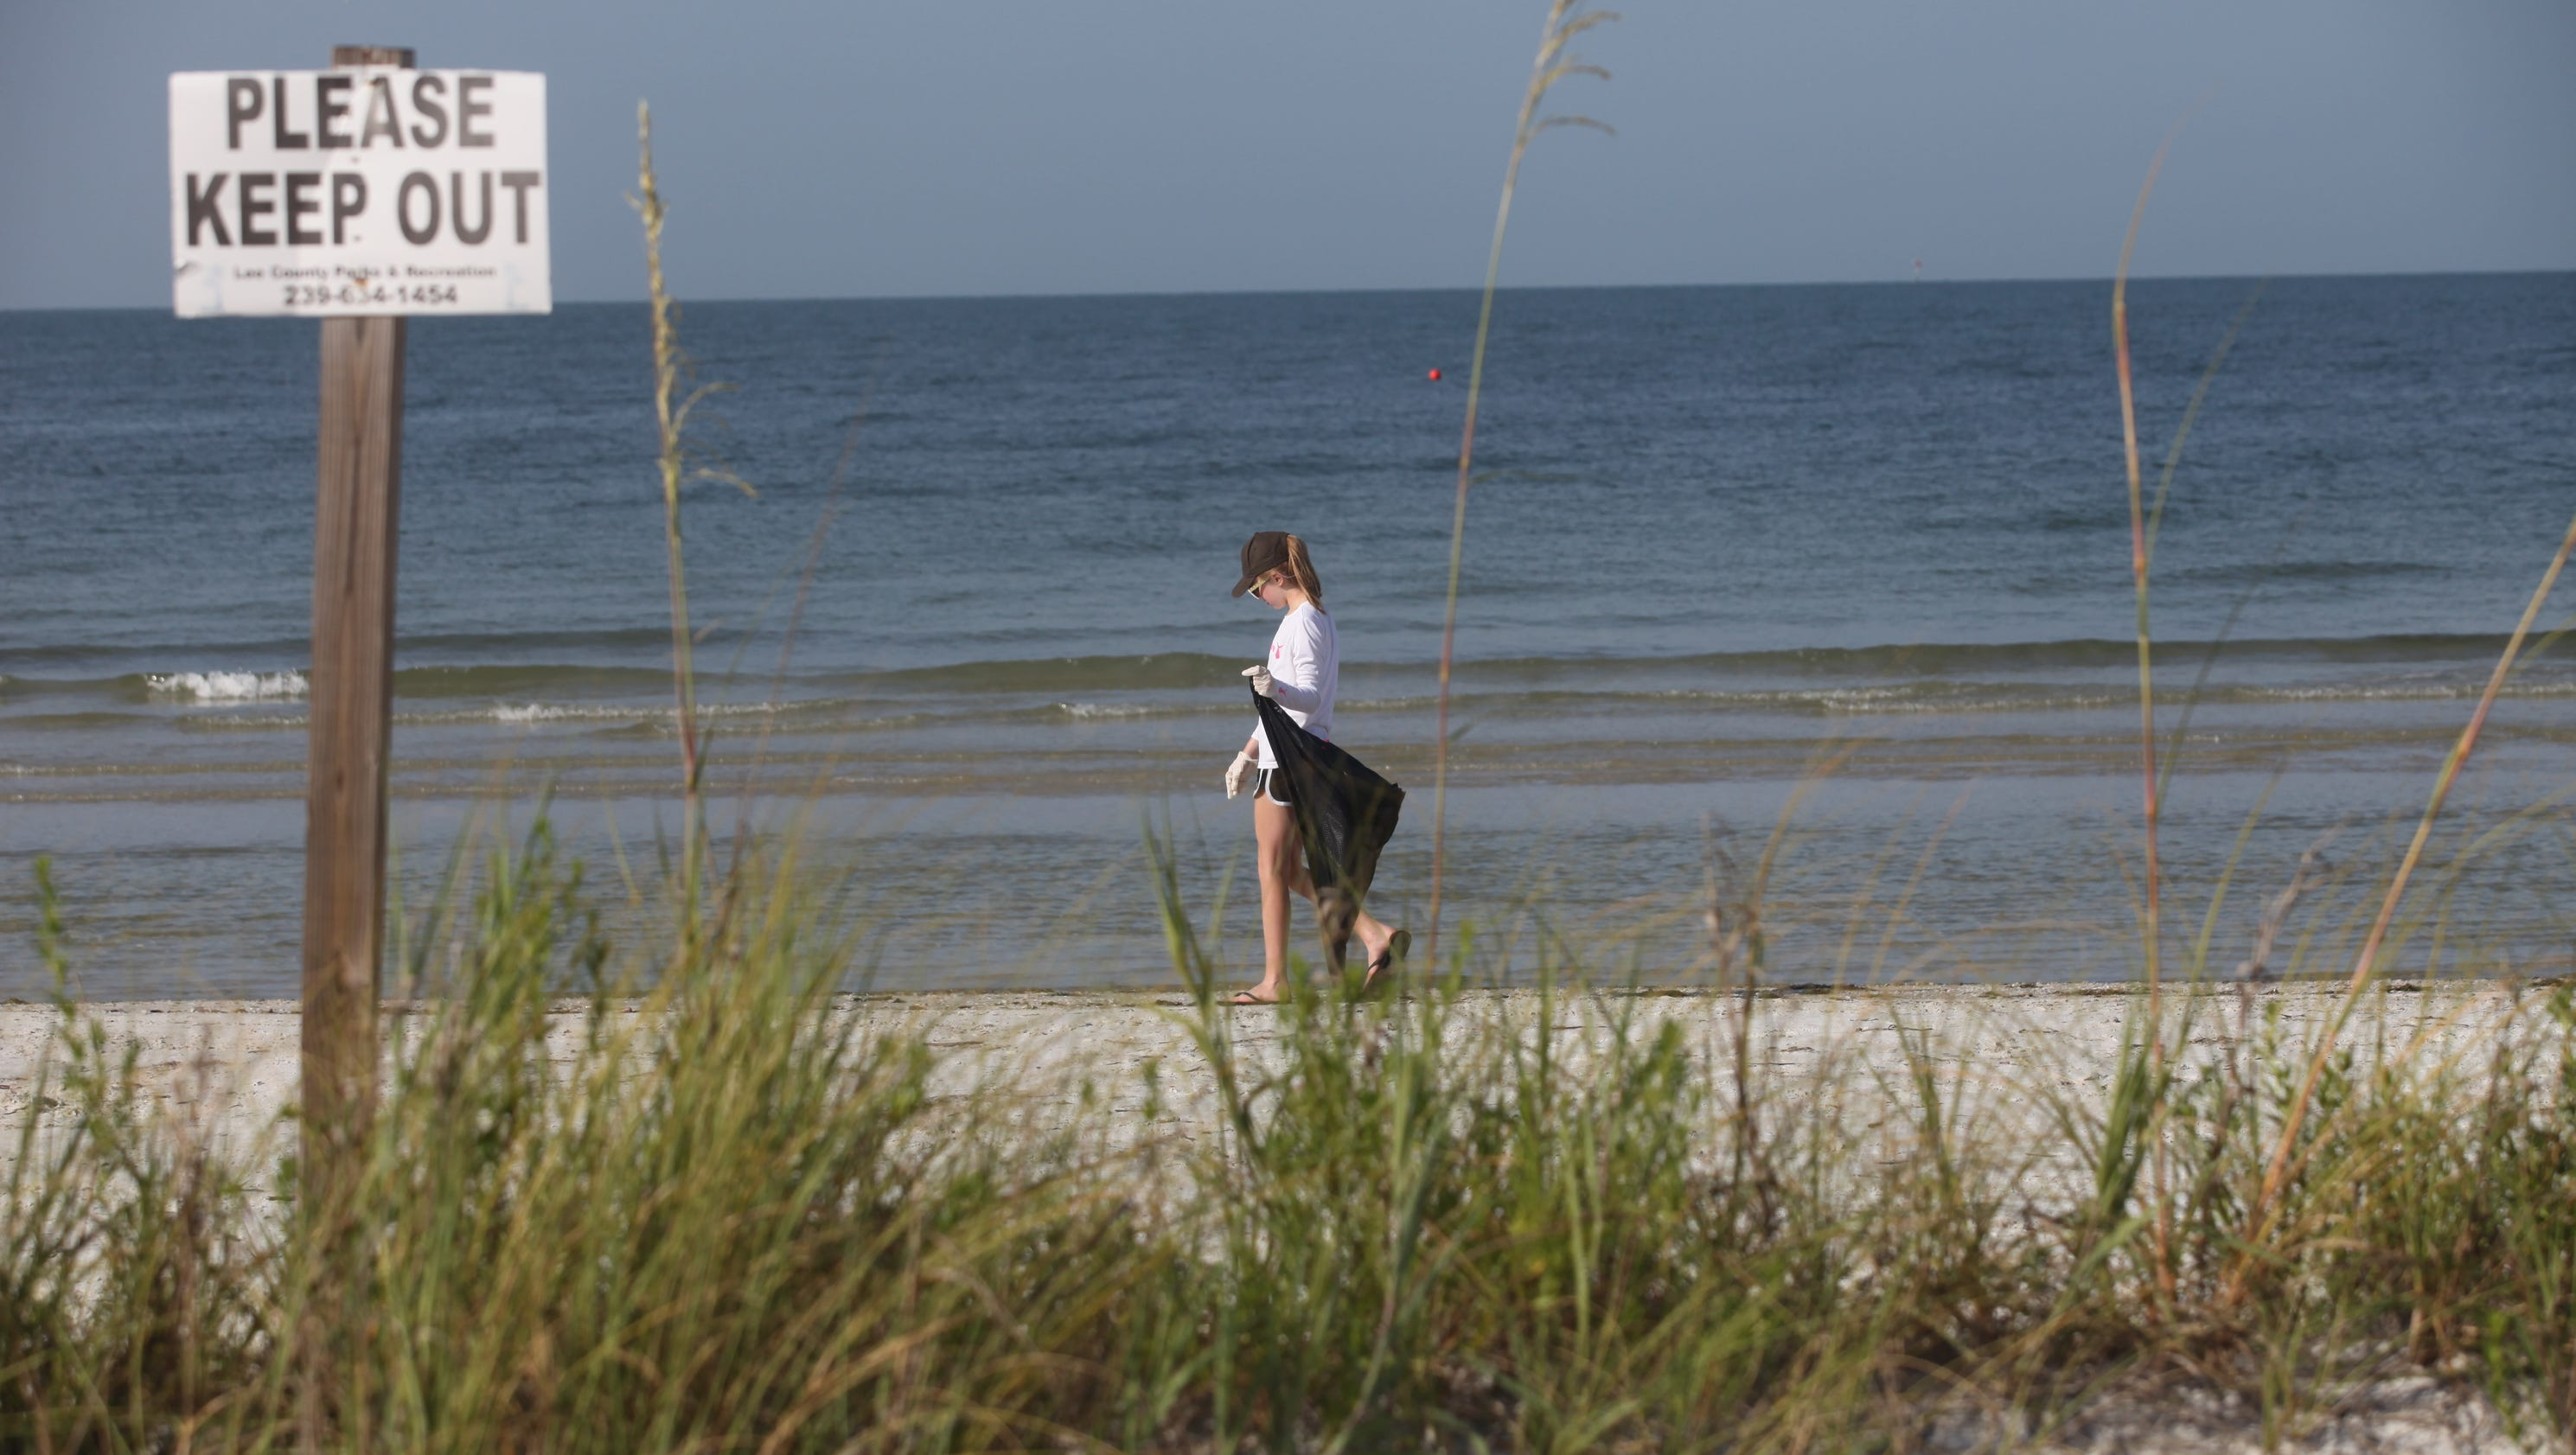 fort myers beach chat Ft myers chat: welcome to chat ft myers, the list of chat hour members in ft myers  fort walton beach chat: ft lauderdale chat: ft myers chat: gainesville chat.